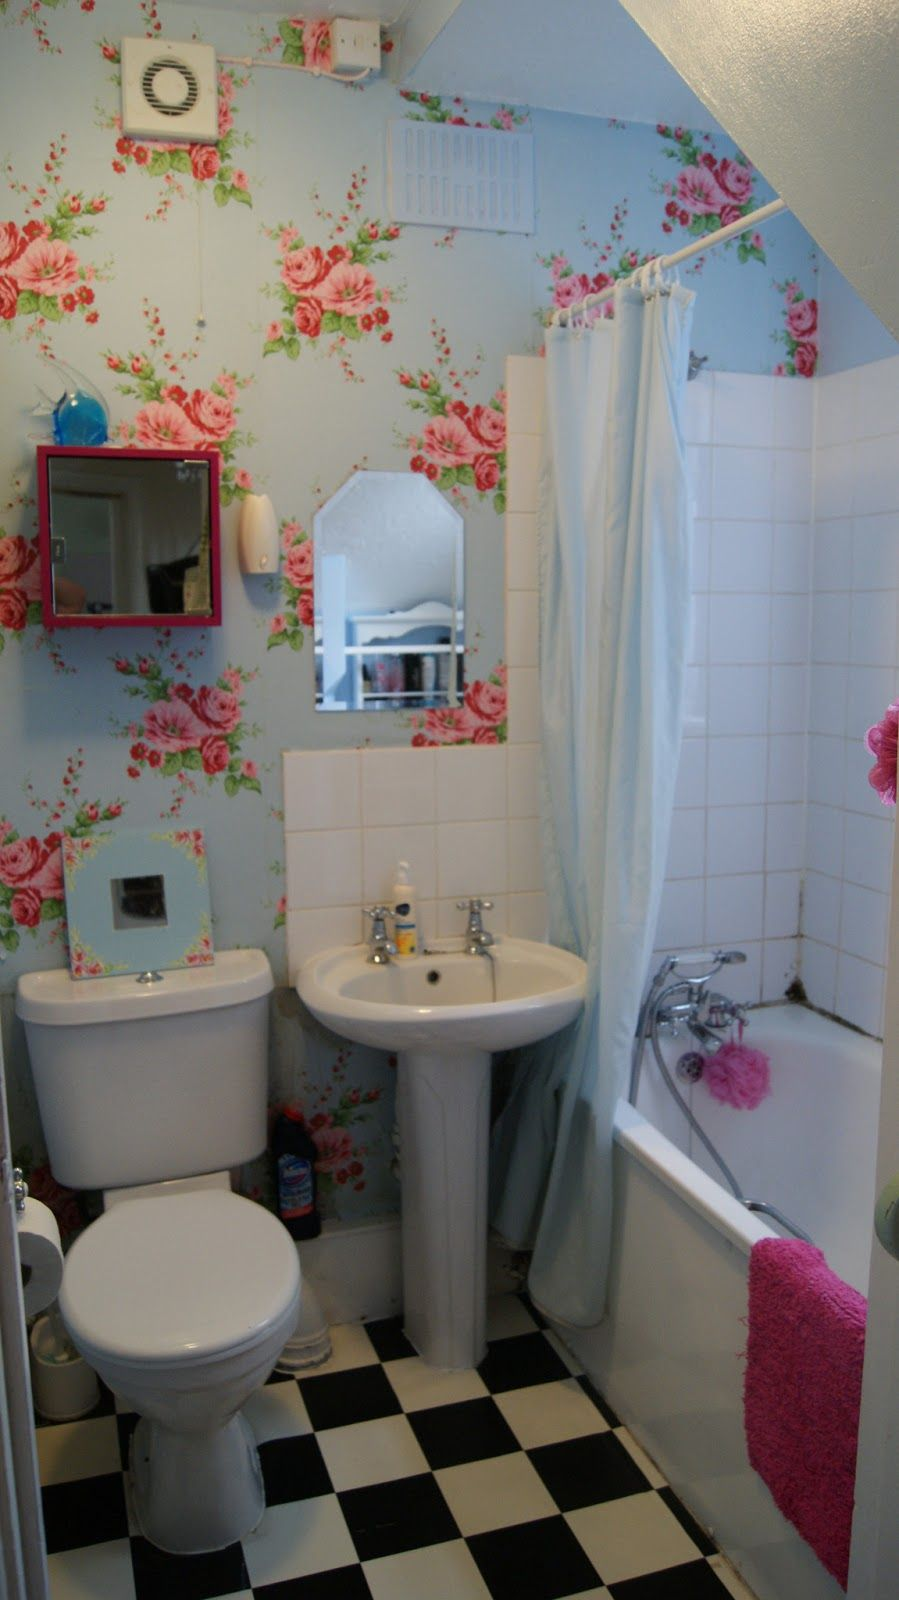 Charmant Lavish Very Small Bathroom Design Idea With Blue Wallpaper With Pink Roses